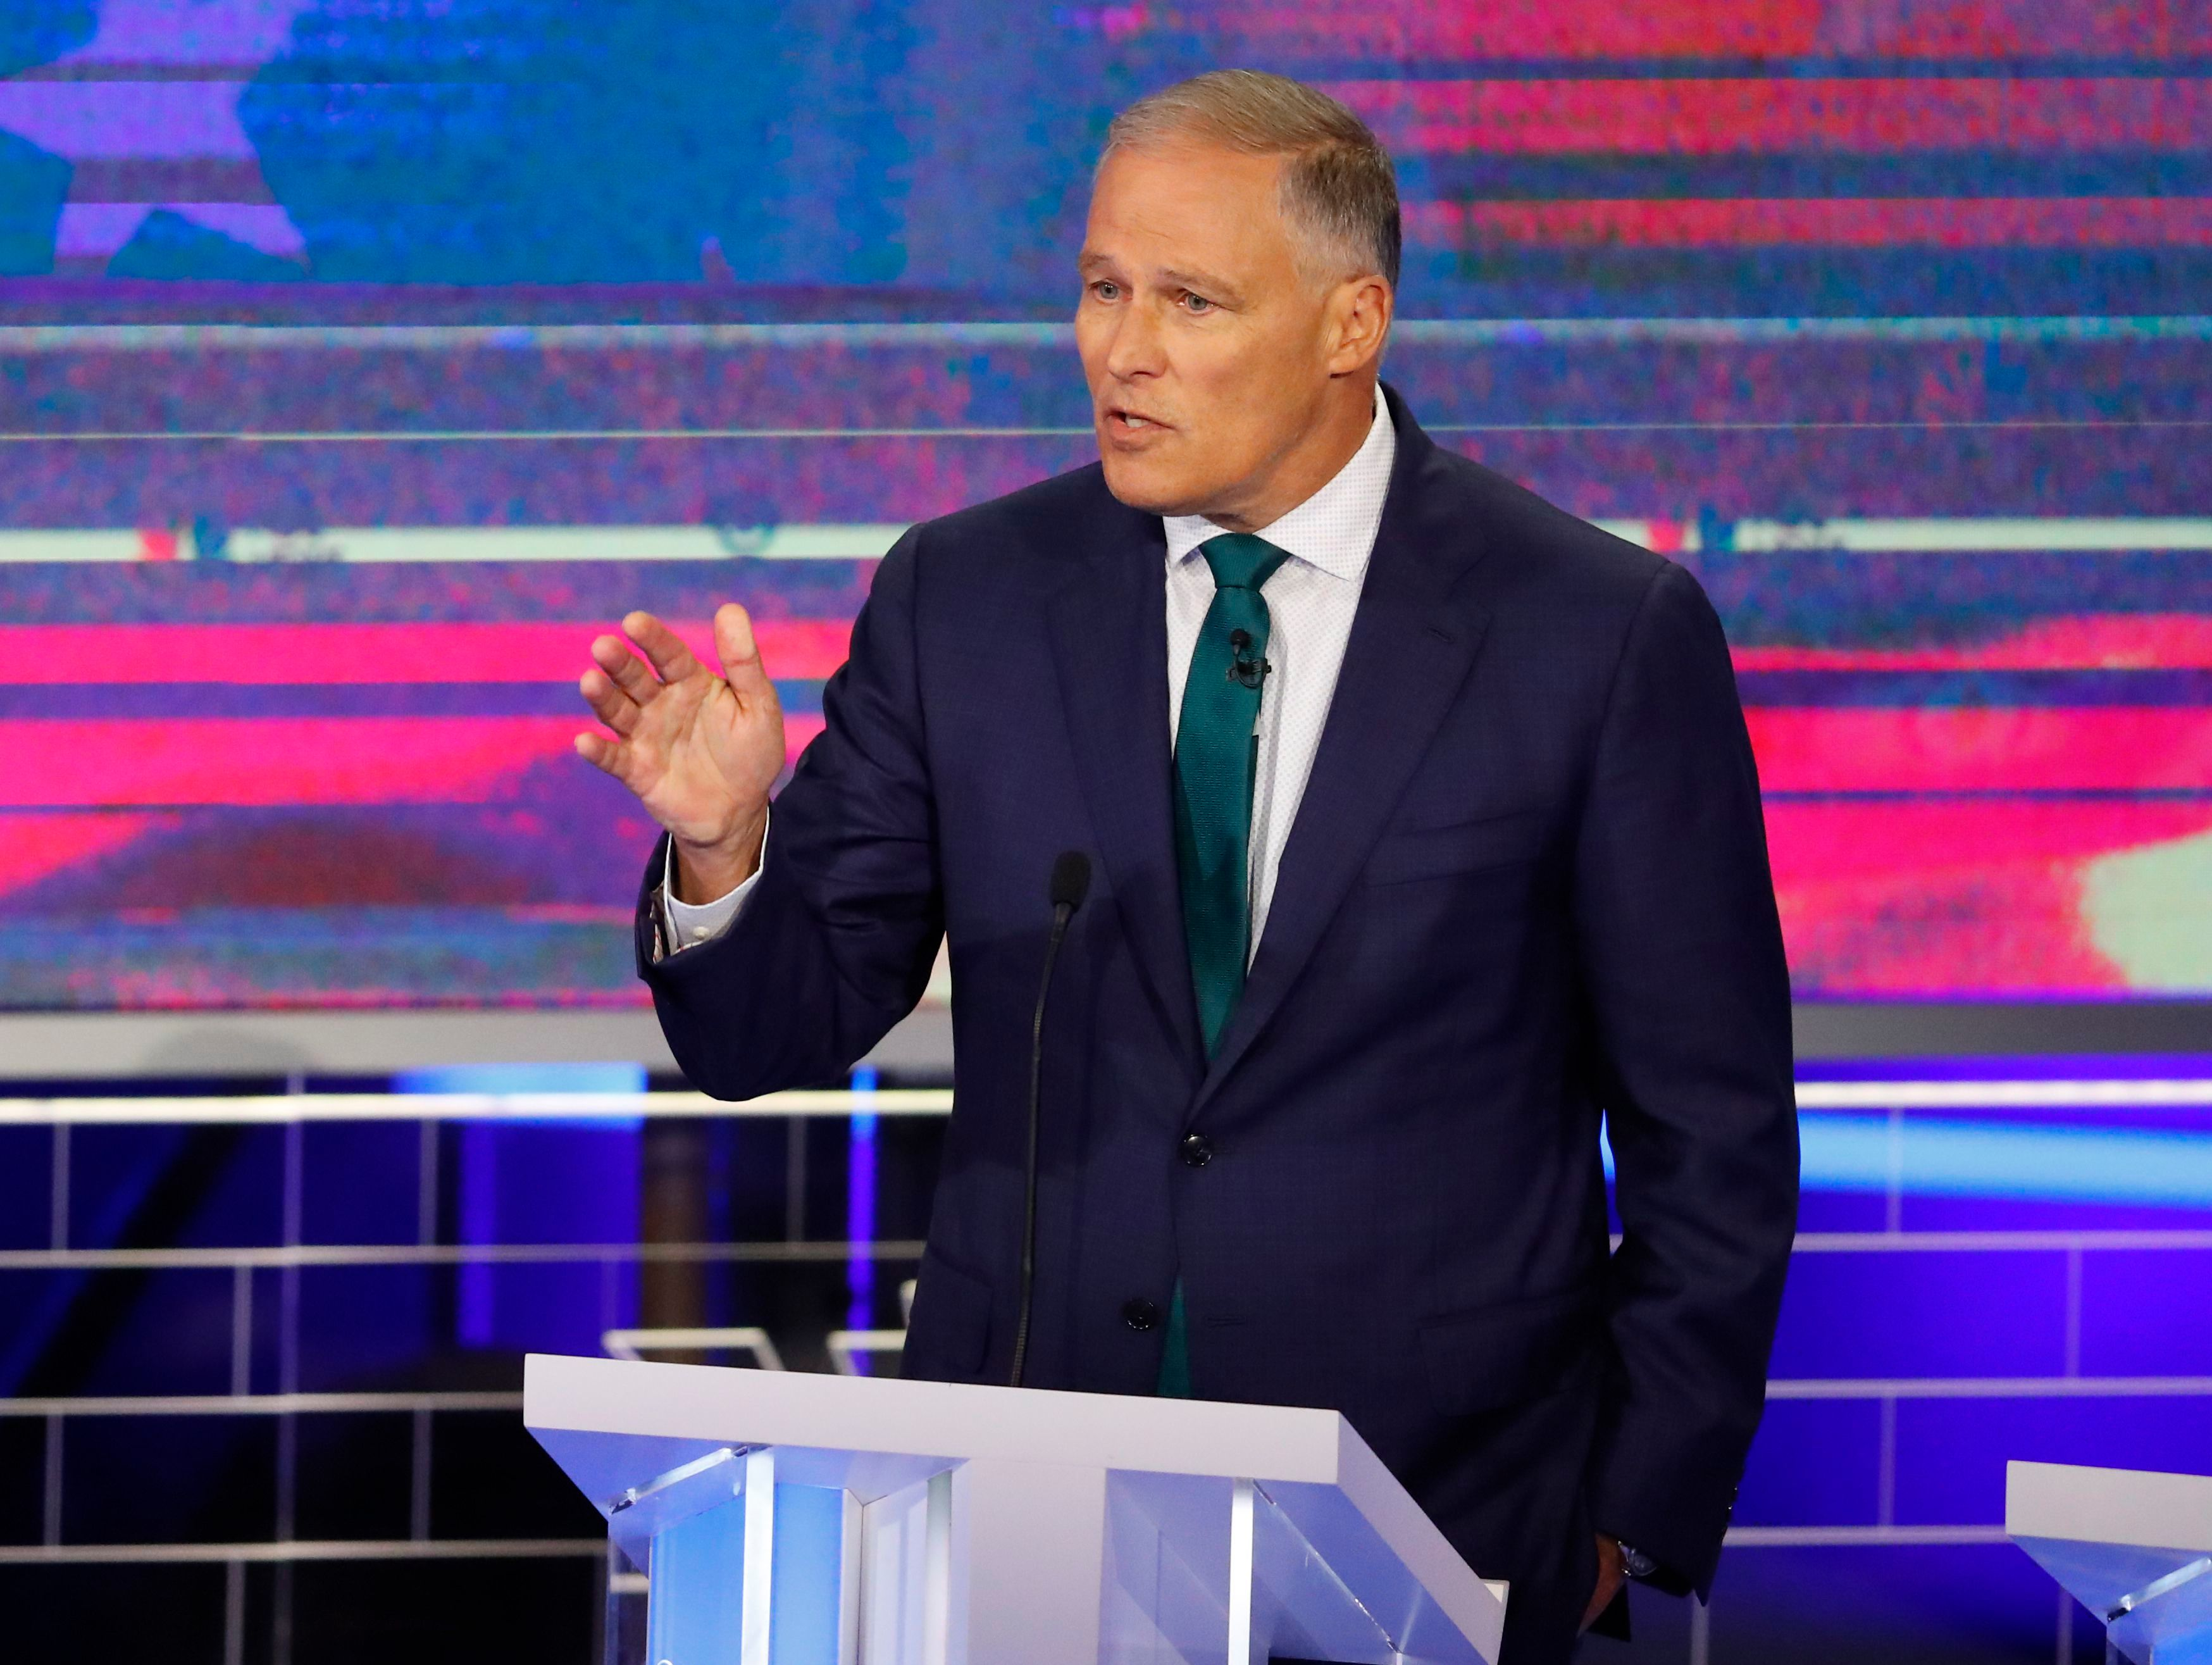 Democratic presidential candidate Washington Gov. Jay Inslee speaks during the Democratic primary debate hosted by NBC News at the Adrienne Arsht Center for the Performing Art, in MiamiElection 2020 Debate, Miami, USA - 26 Jun 2019